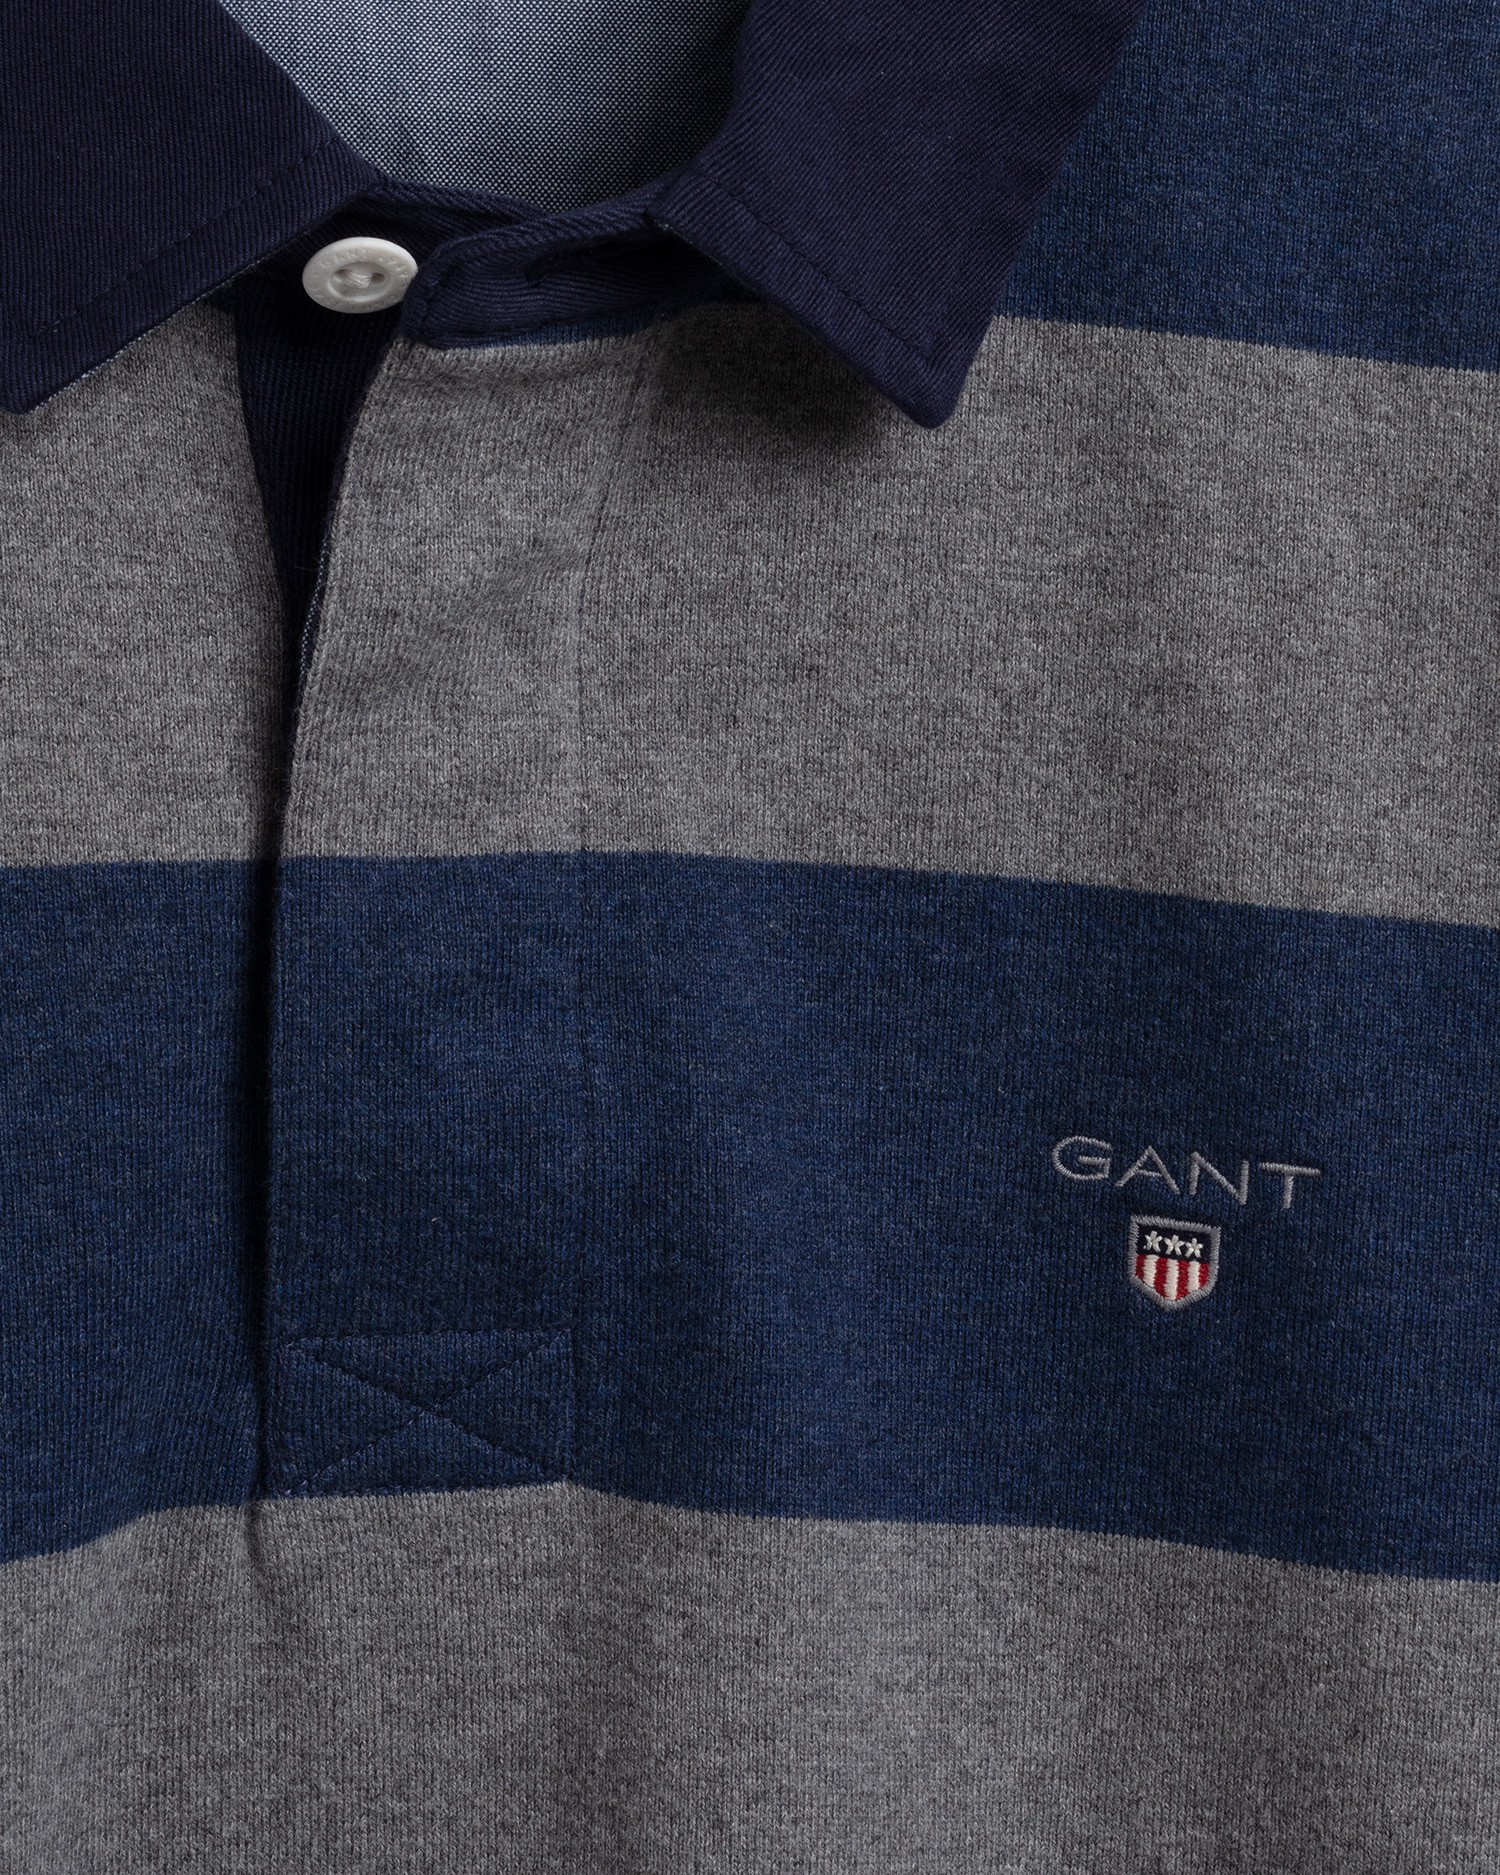 GANT Men's Original Barstripe Heavy Rugger - 2005051